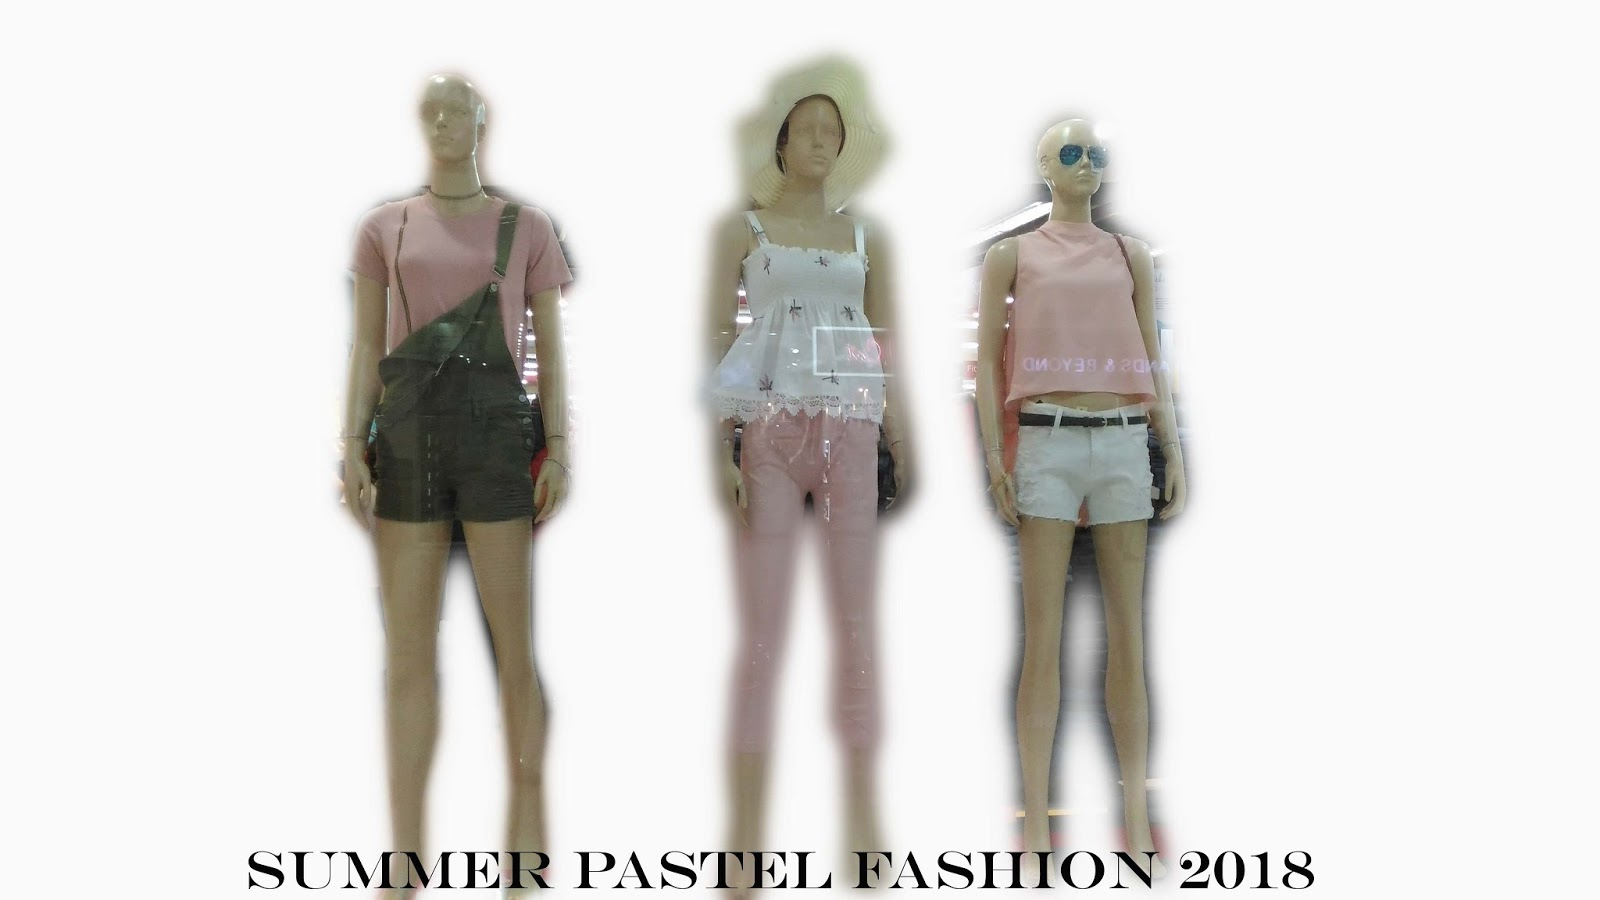 Mall visit for summer pastel fashion 2018